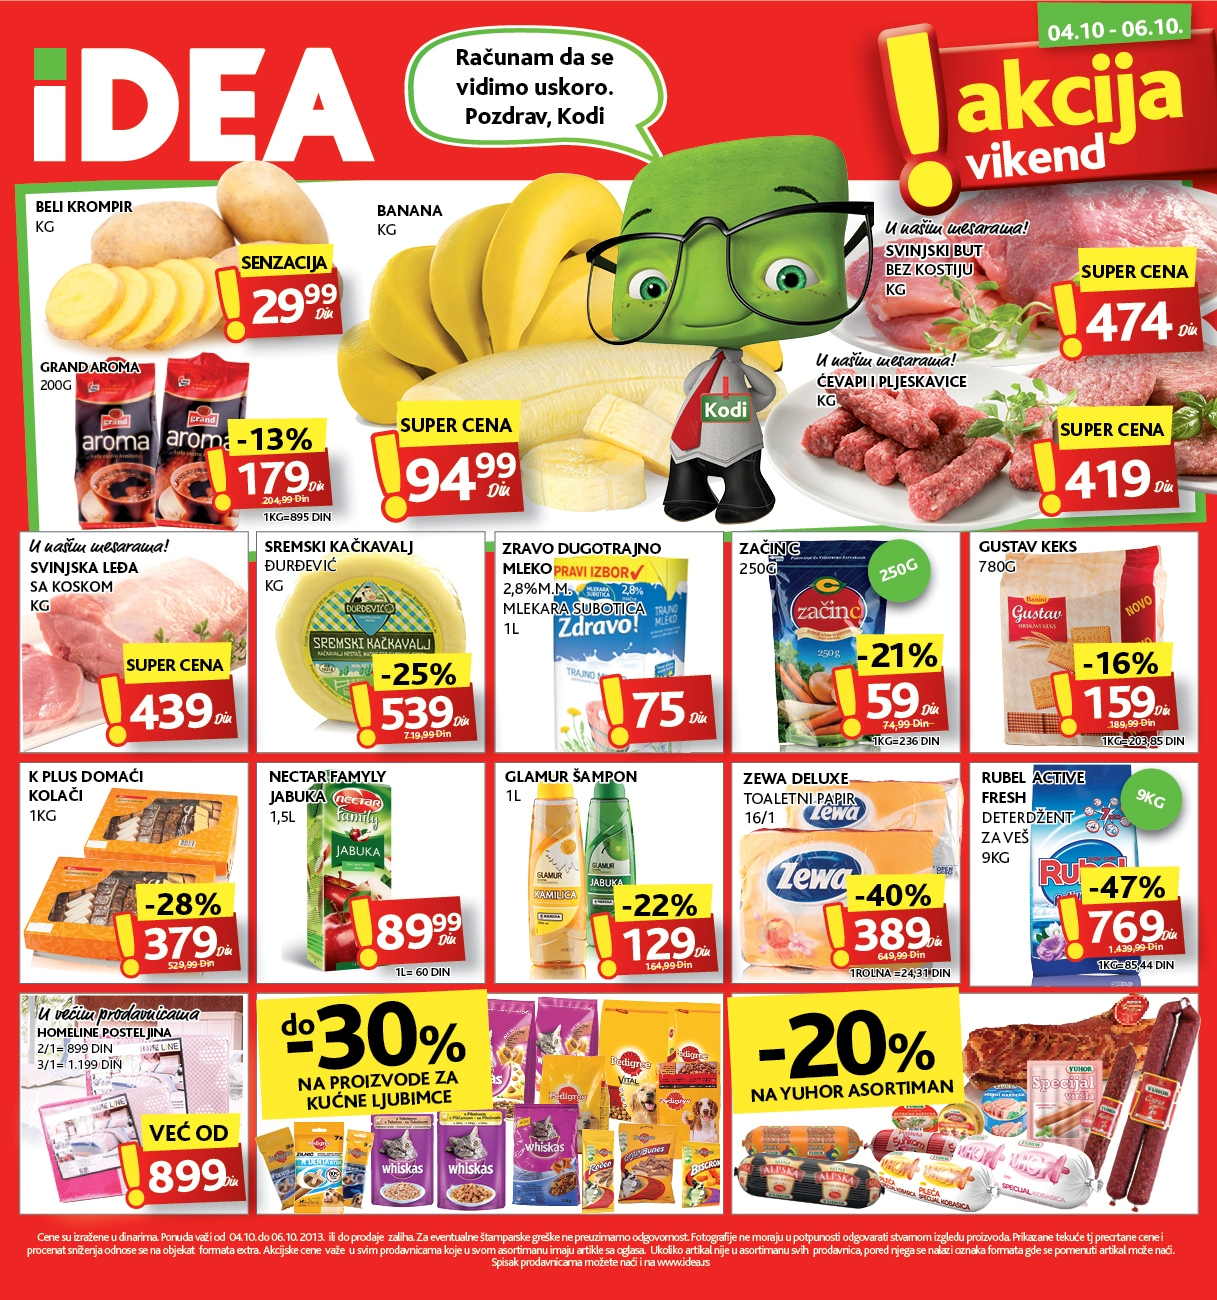 Idea katalog vikend super cena